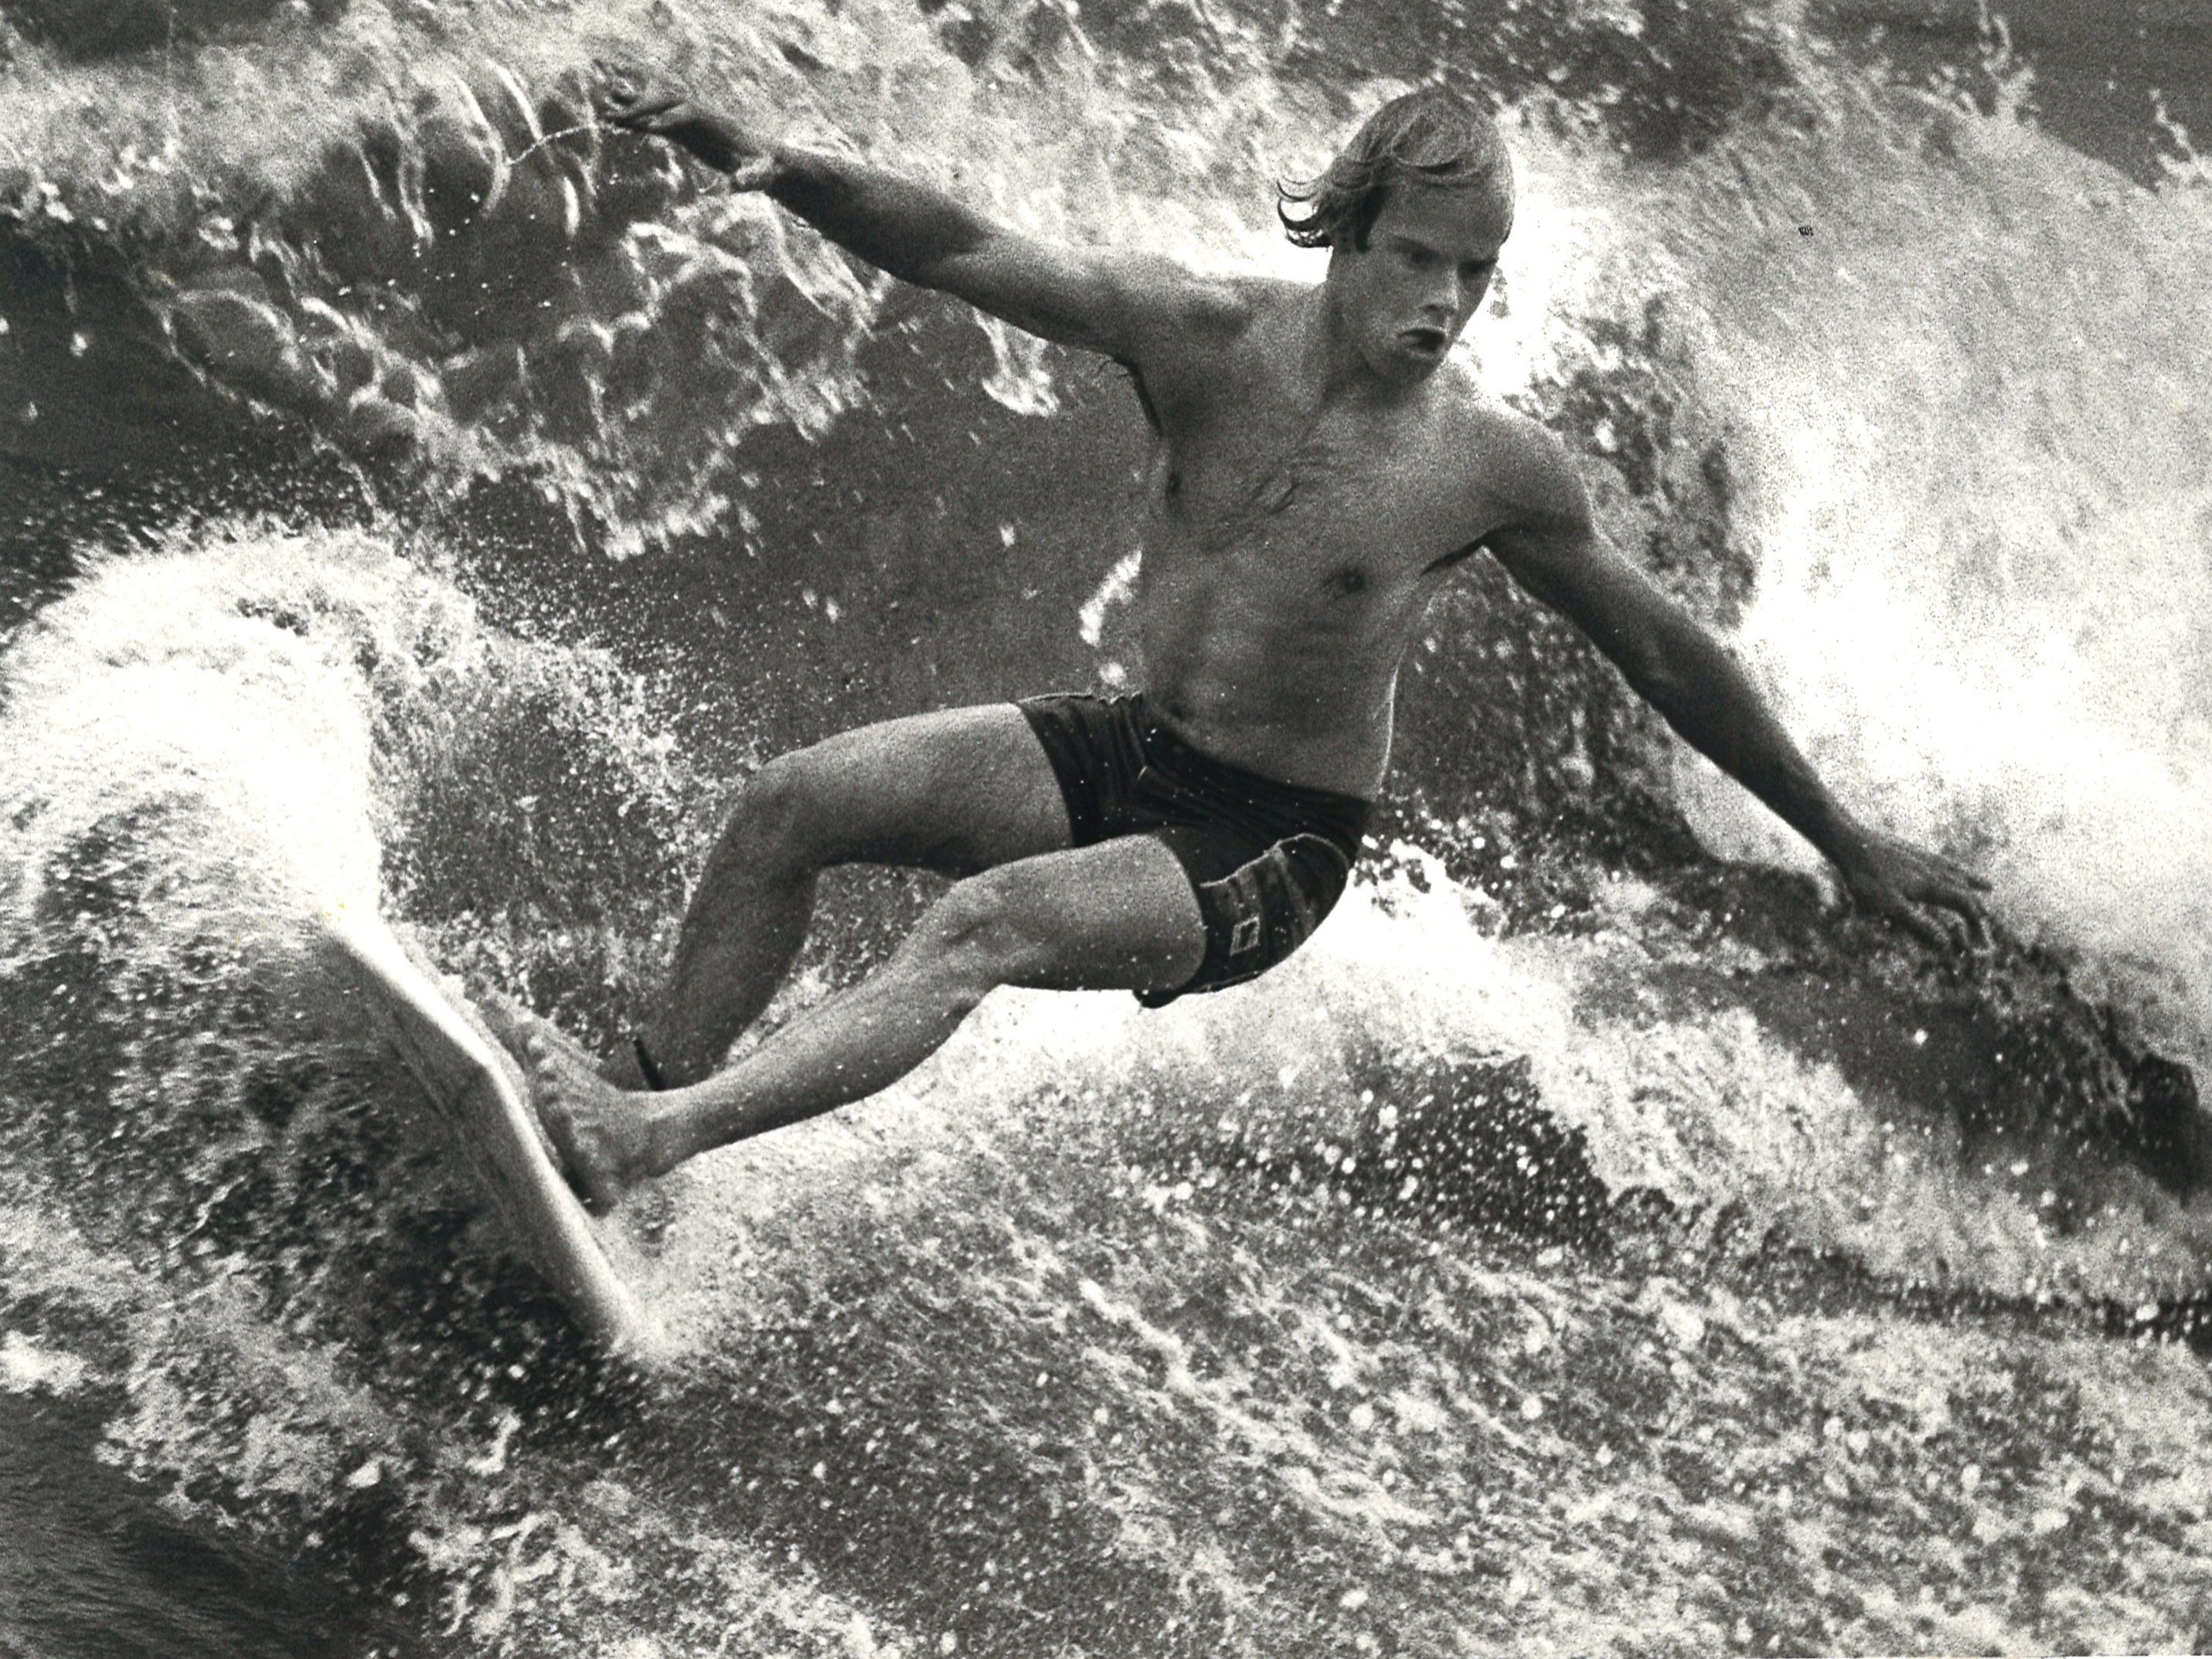 A surfer cuts back on a wave in Port Aransas on April 7, 1982.